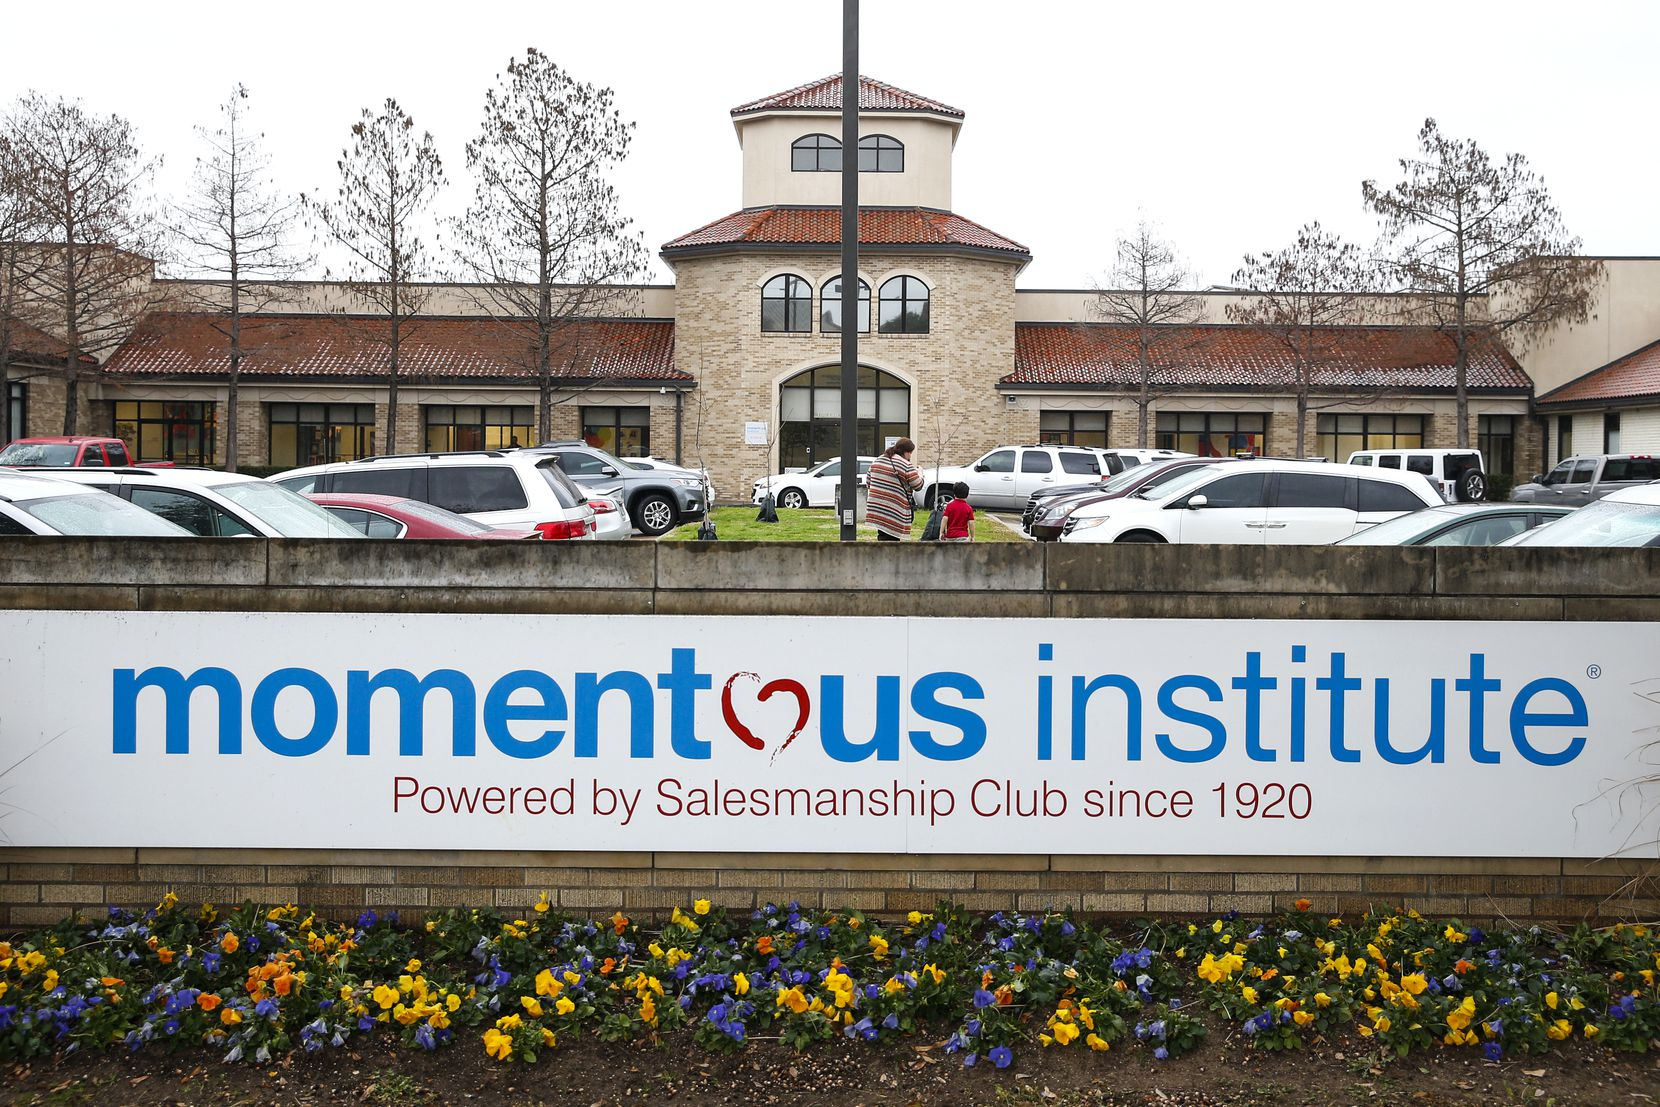 Momentous Institute is pictured on Friday, Jan. 10, 2020 in Dallas. (Ryan Michalesko/The Dallas Morning News)